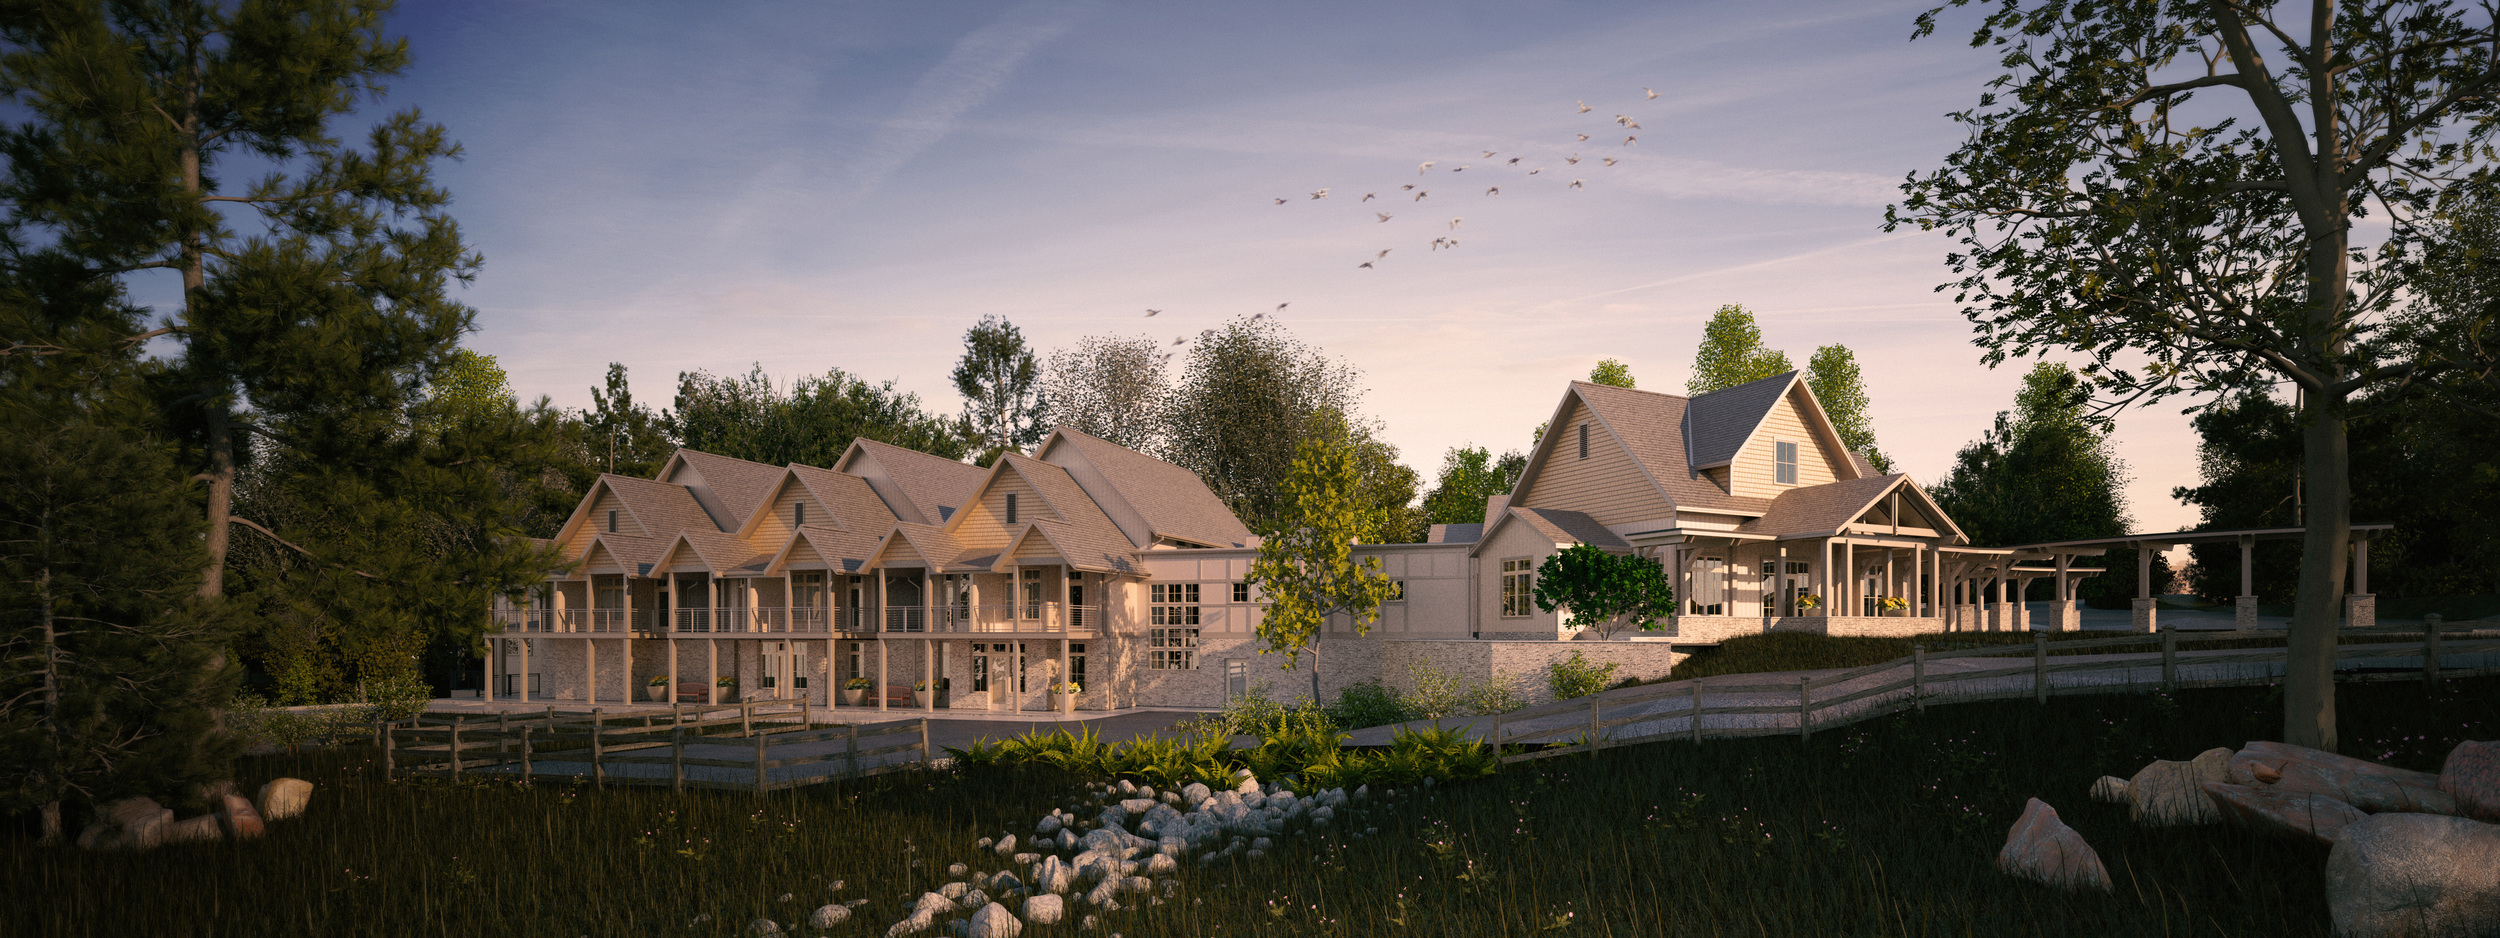 rendering by studiosidewalk  Hospice Patient Care Facility in Mobile, AL by HDS Architecture